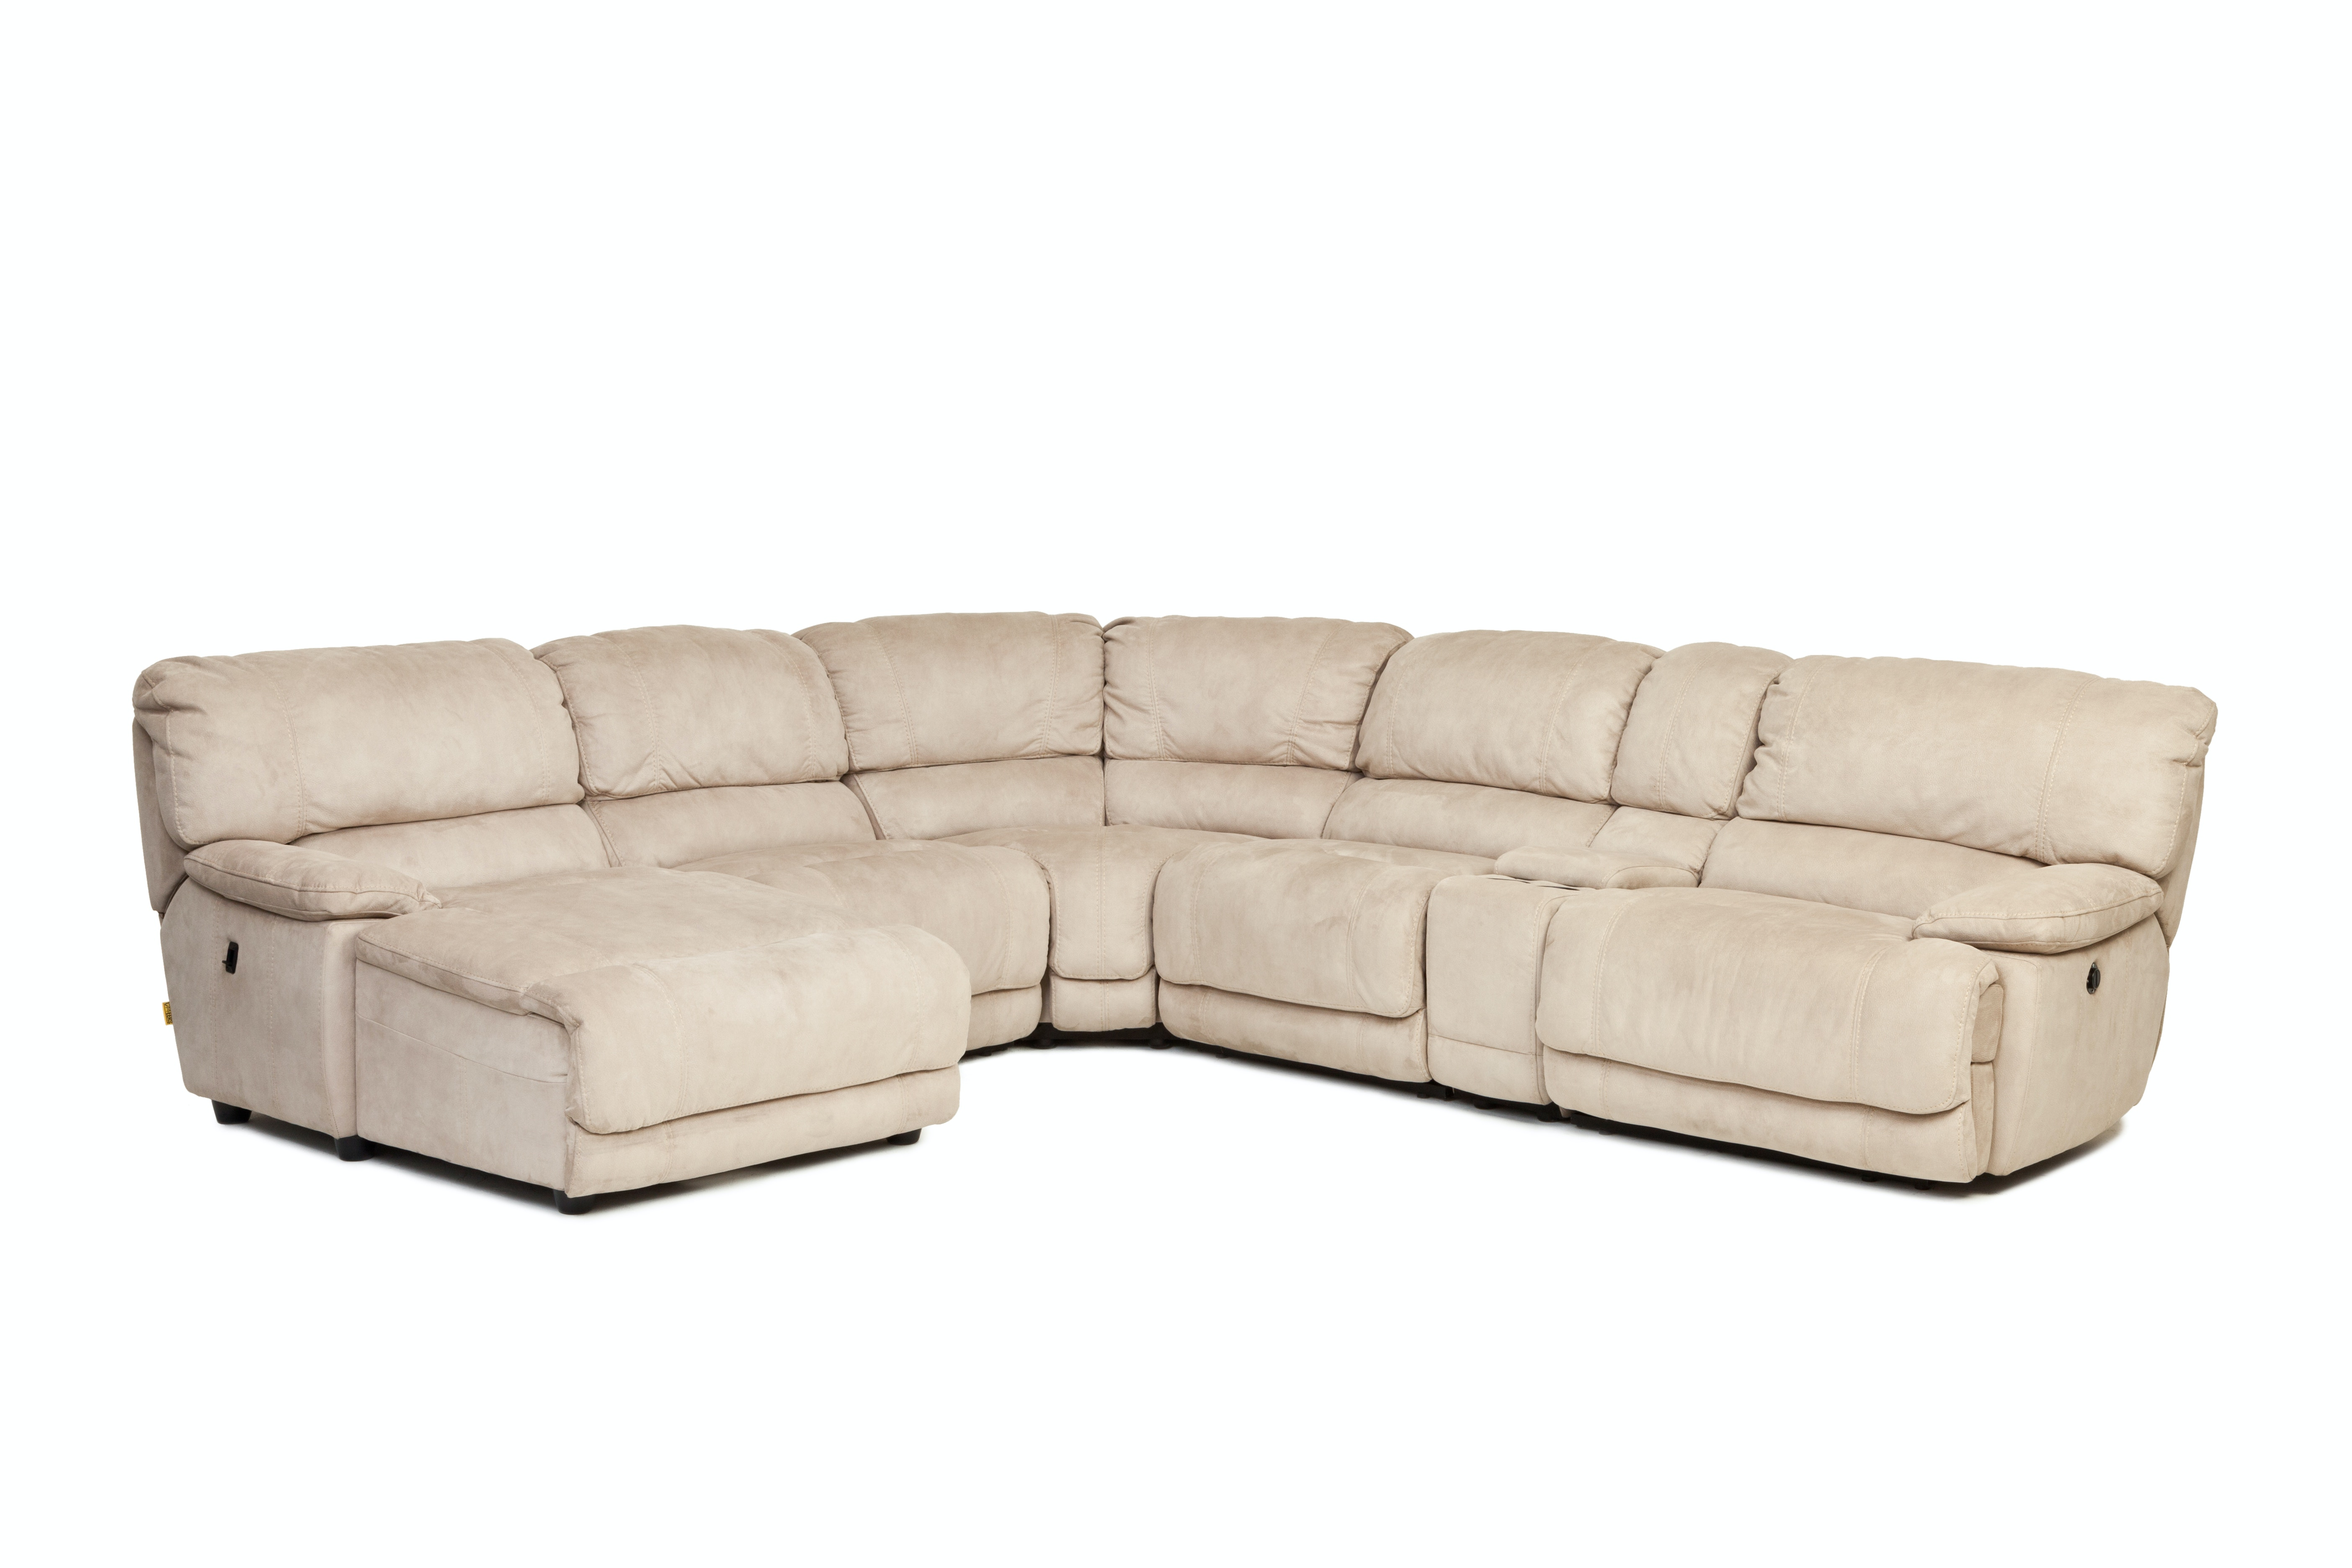 Summer Clearance 6piece Wicker Sectional Sofa Gray Image